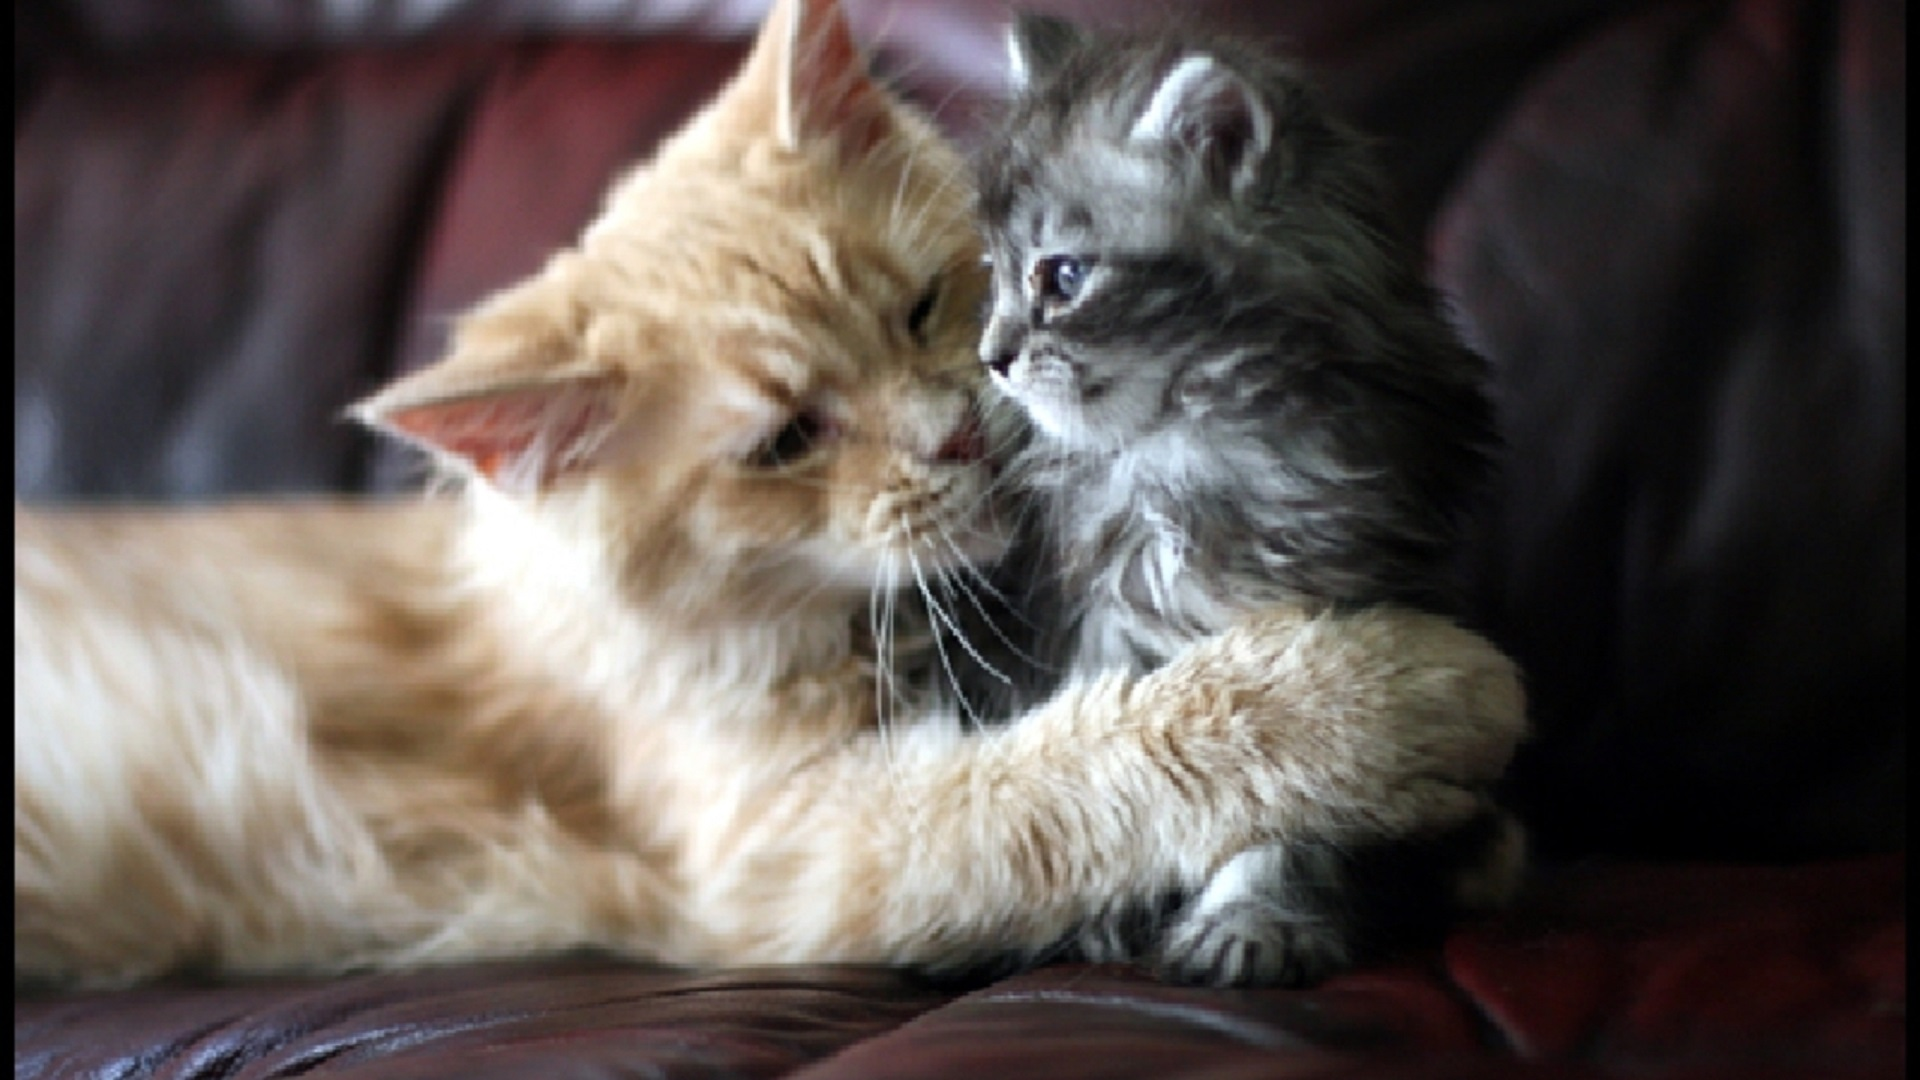 Beautiful Cat and kitten cats free hd wallpapers for desktops HD